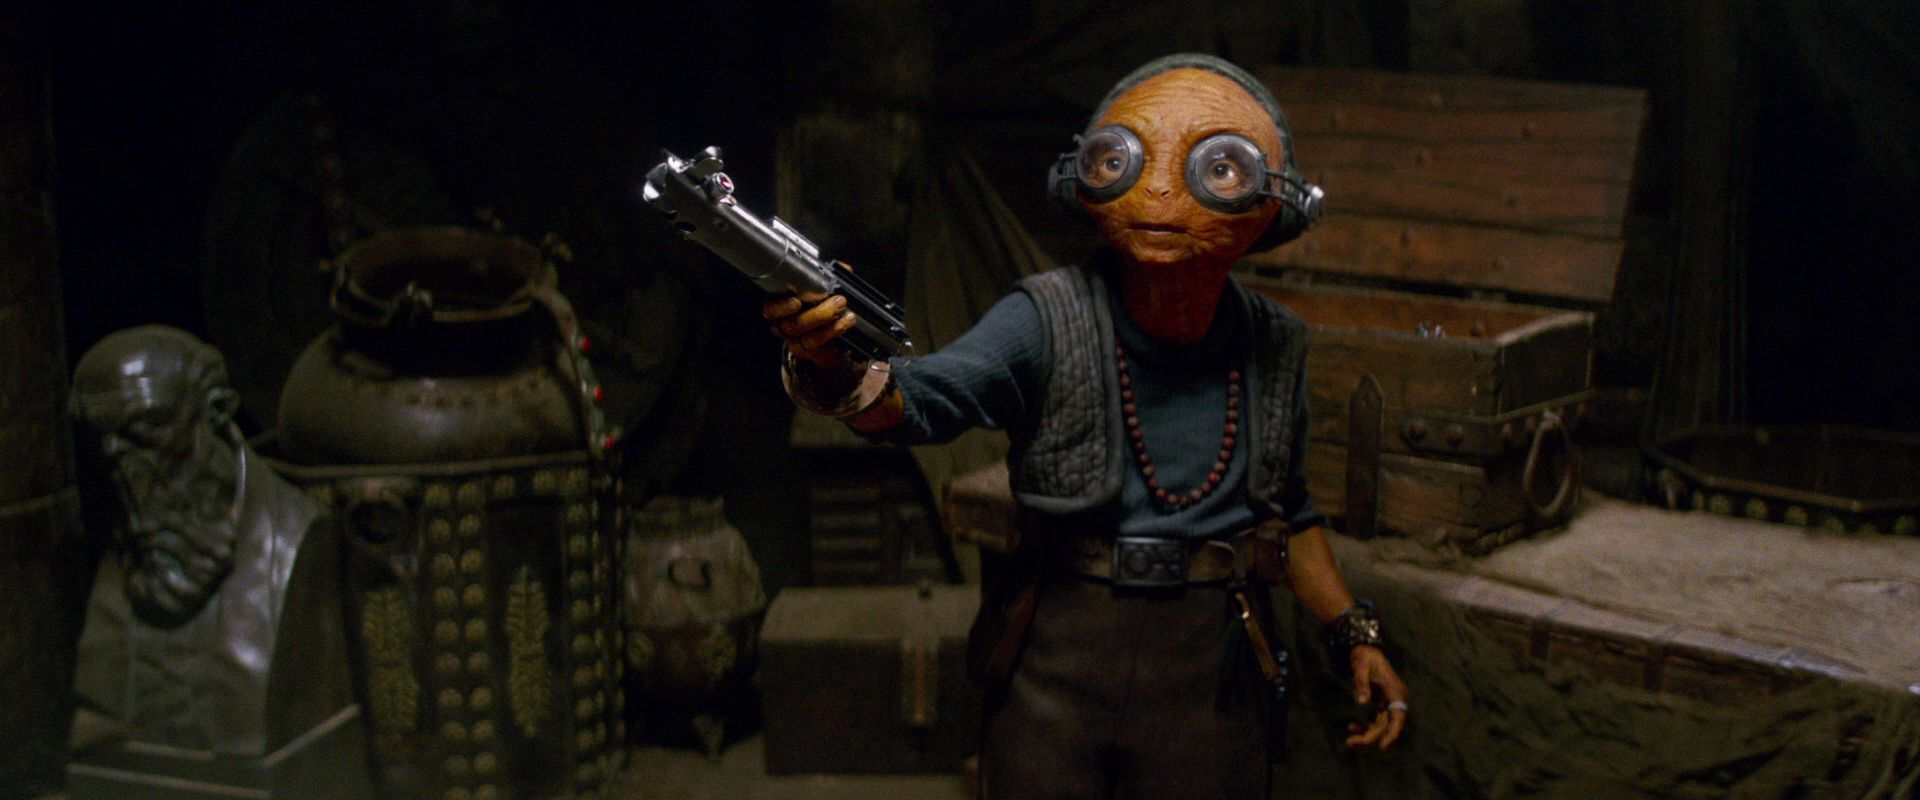 New details surface on Maz Kanatas role in The Last Jedi